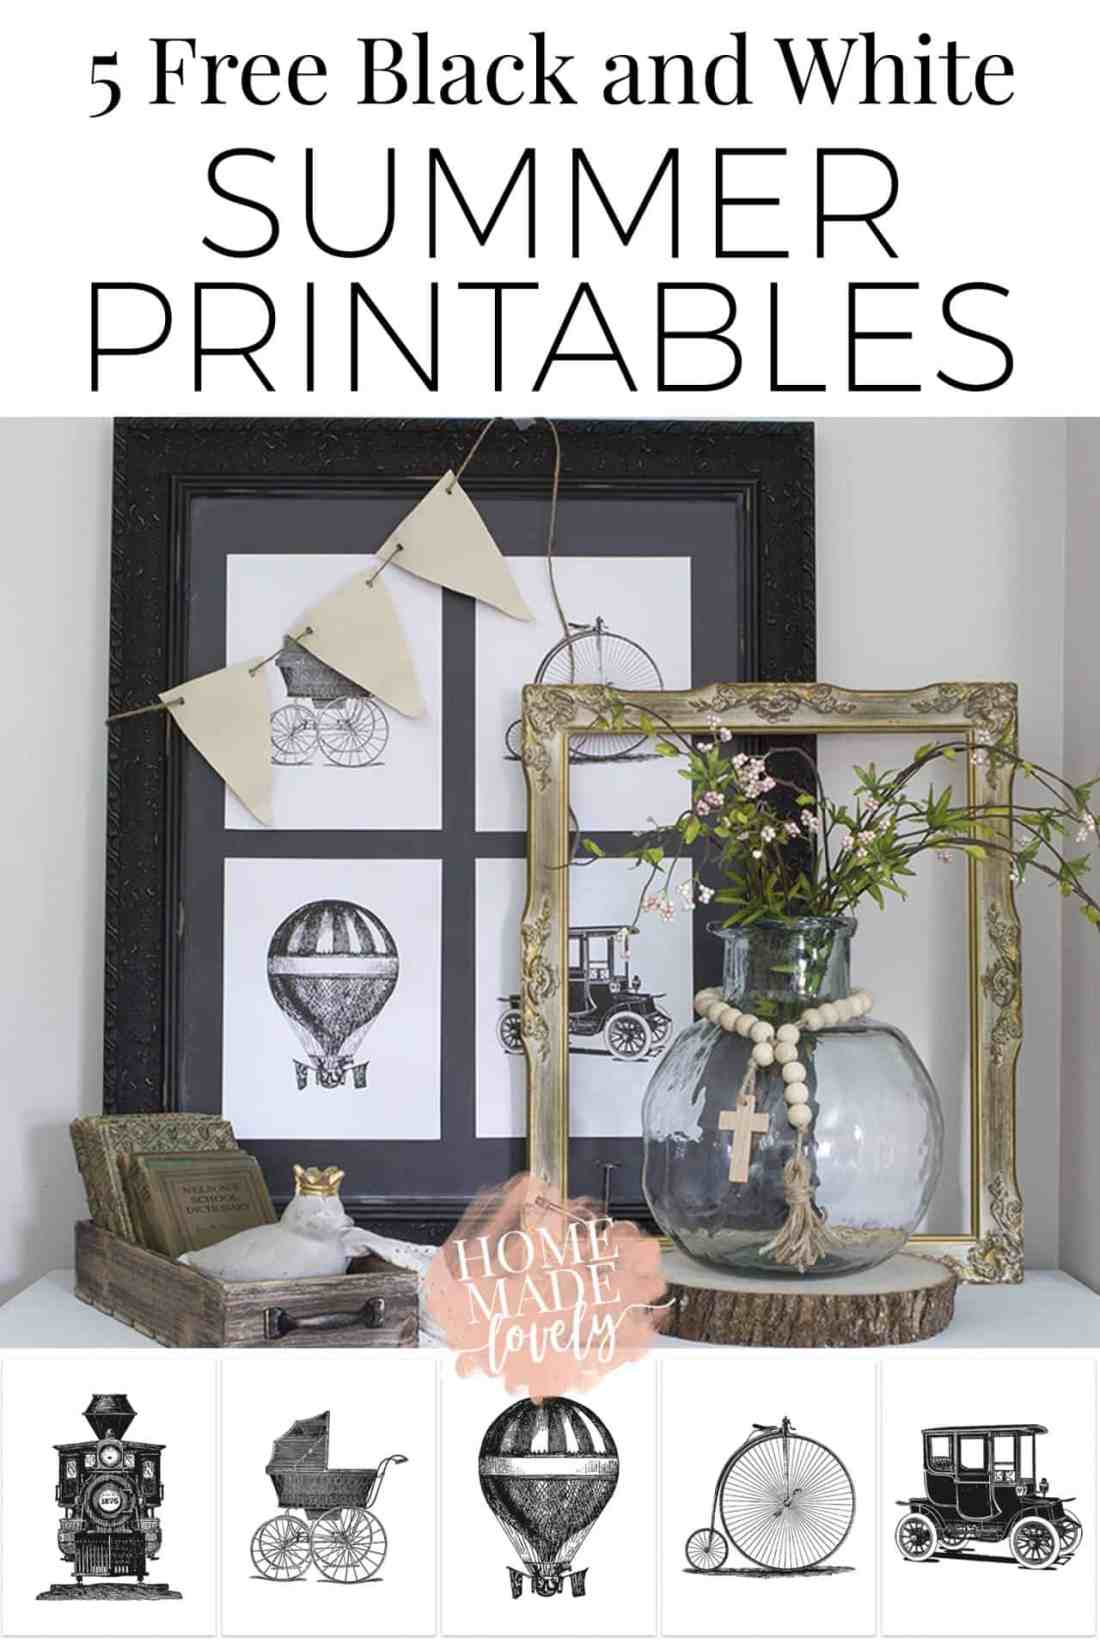 Love vintage farmhouse style? Here are 5 free black and white summer printables for you to use in your home, featuring retro modes of transportation: a bicycle, vintage car, baby carriage, hot air balloon and steam train! Plus a few words from my momma heart to yours.